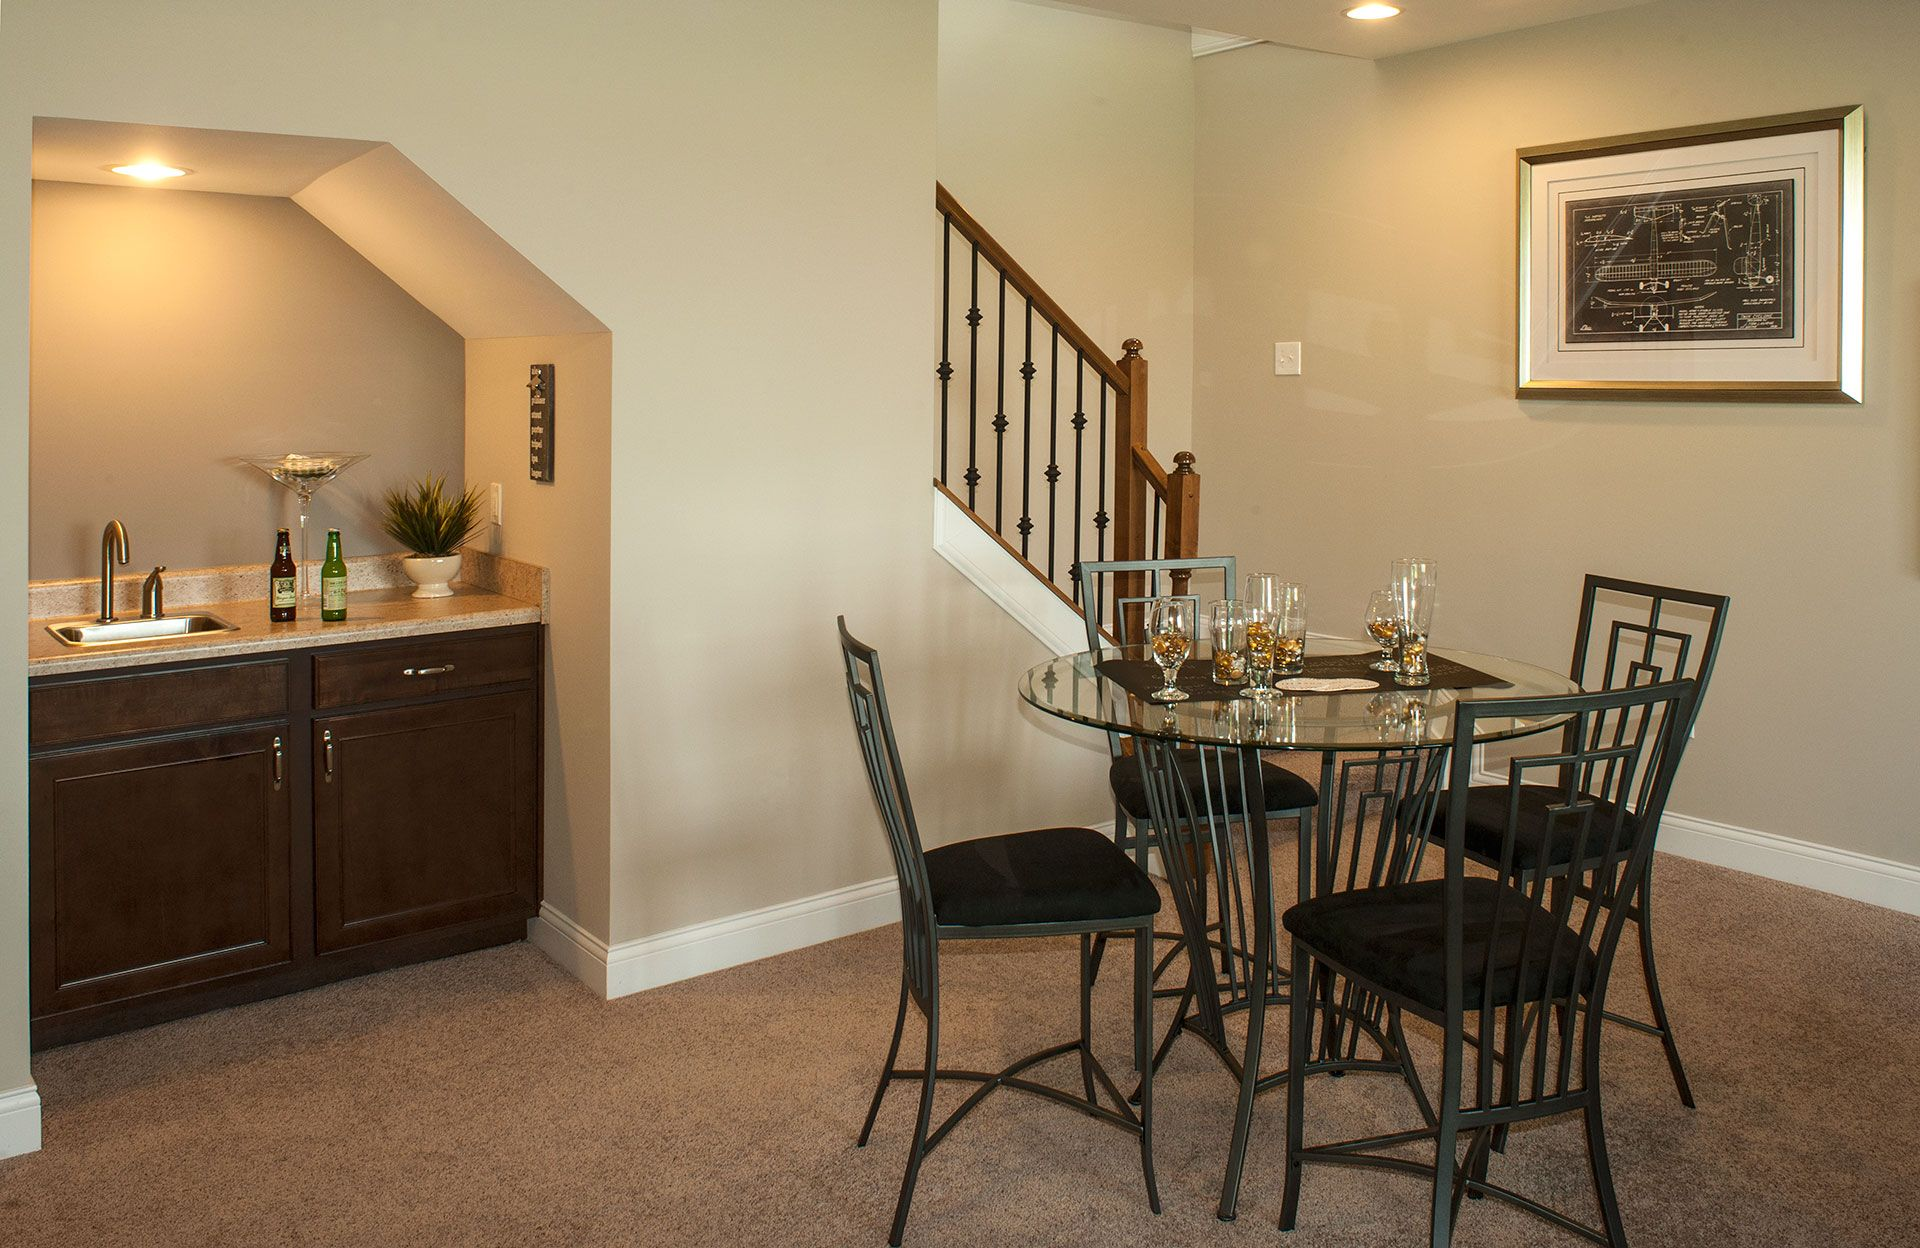 Kitchen featured in the Waverly By Drees Homes in Cincinnati, KY